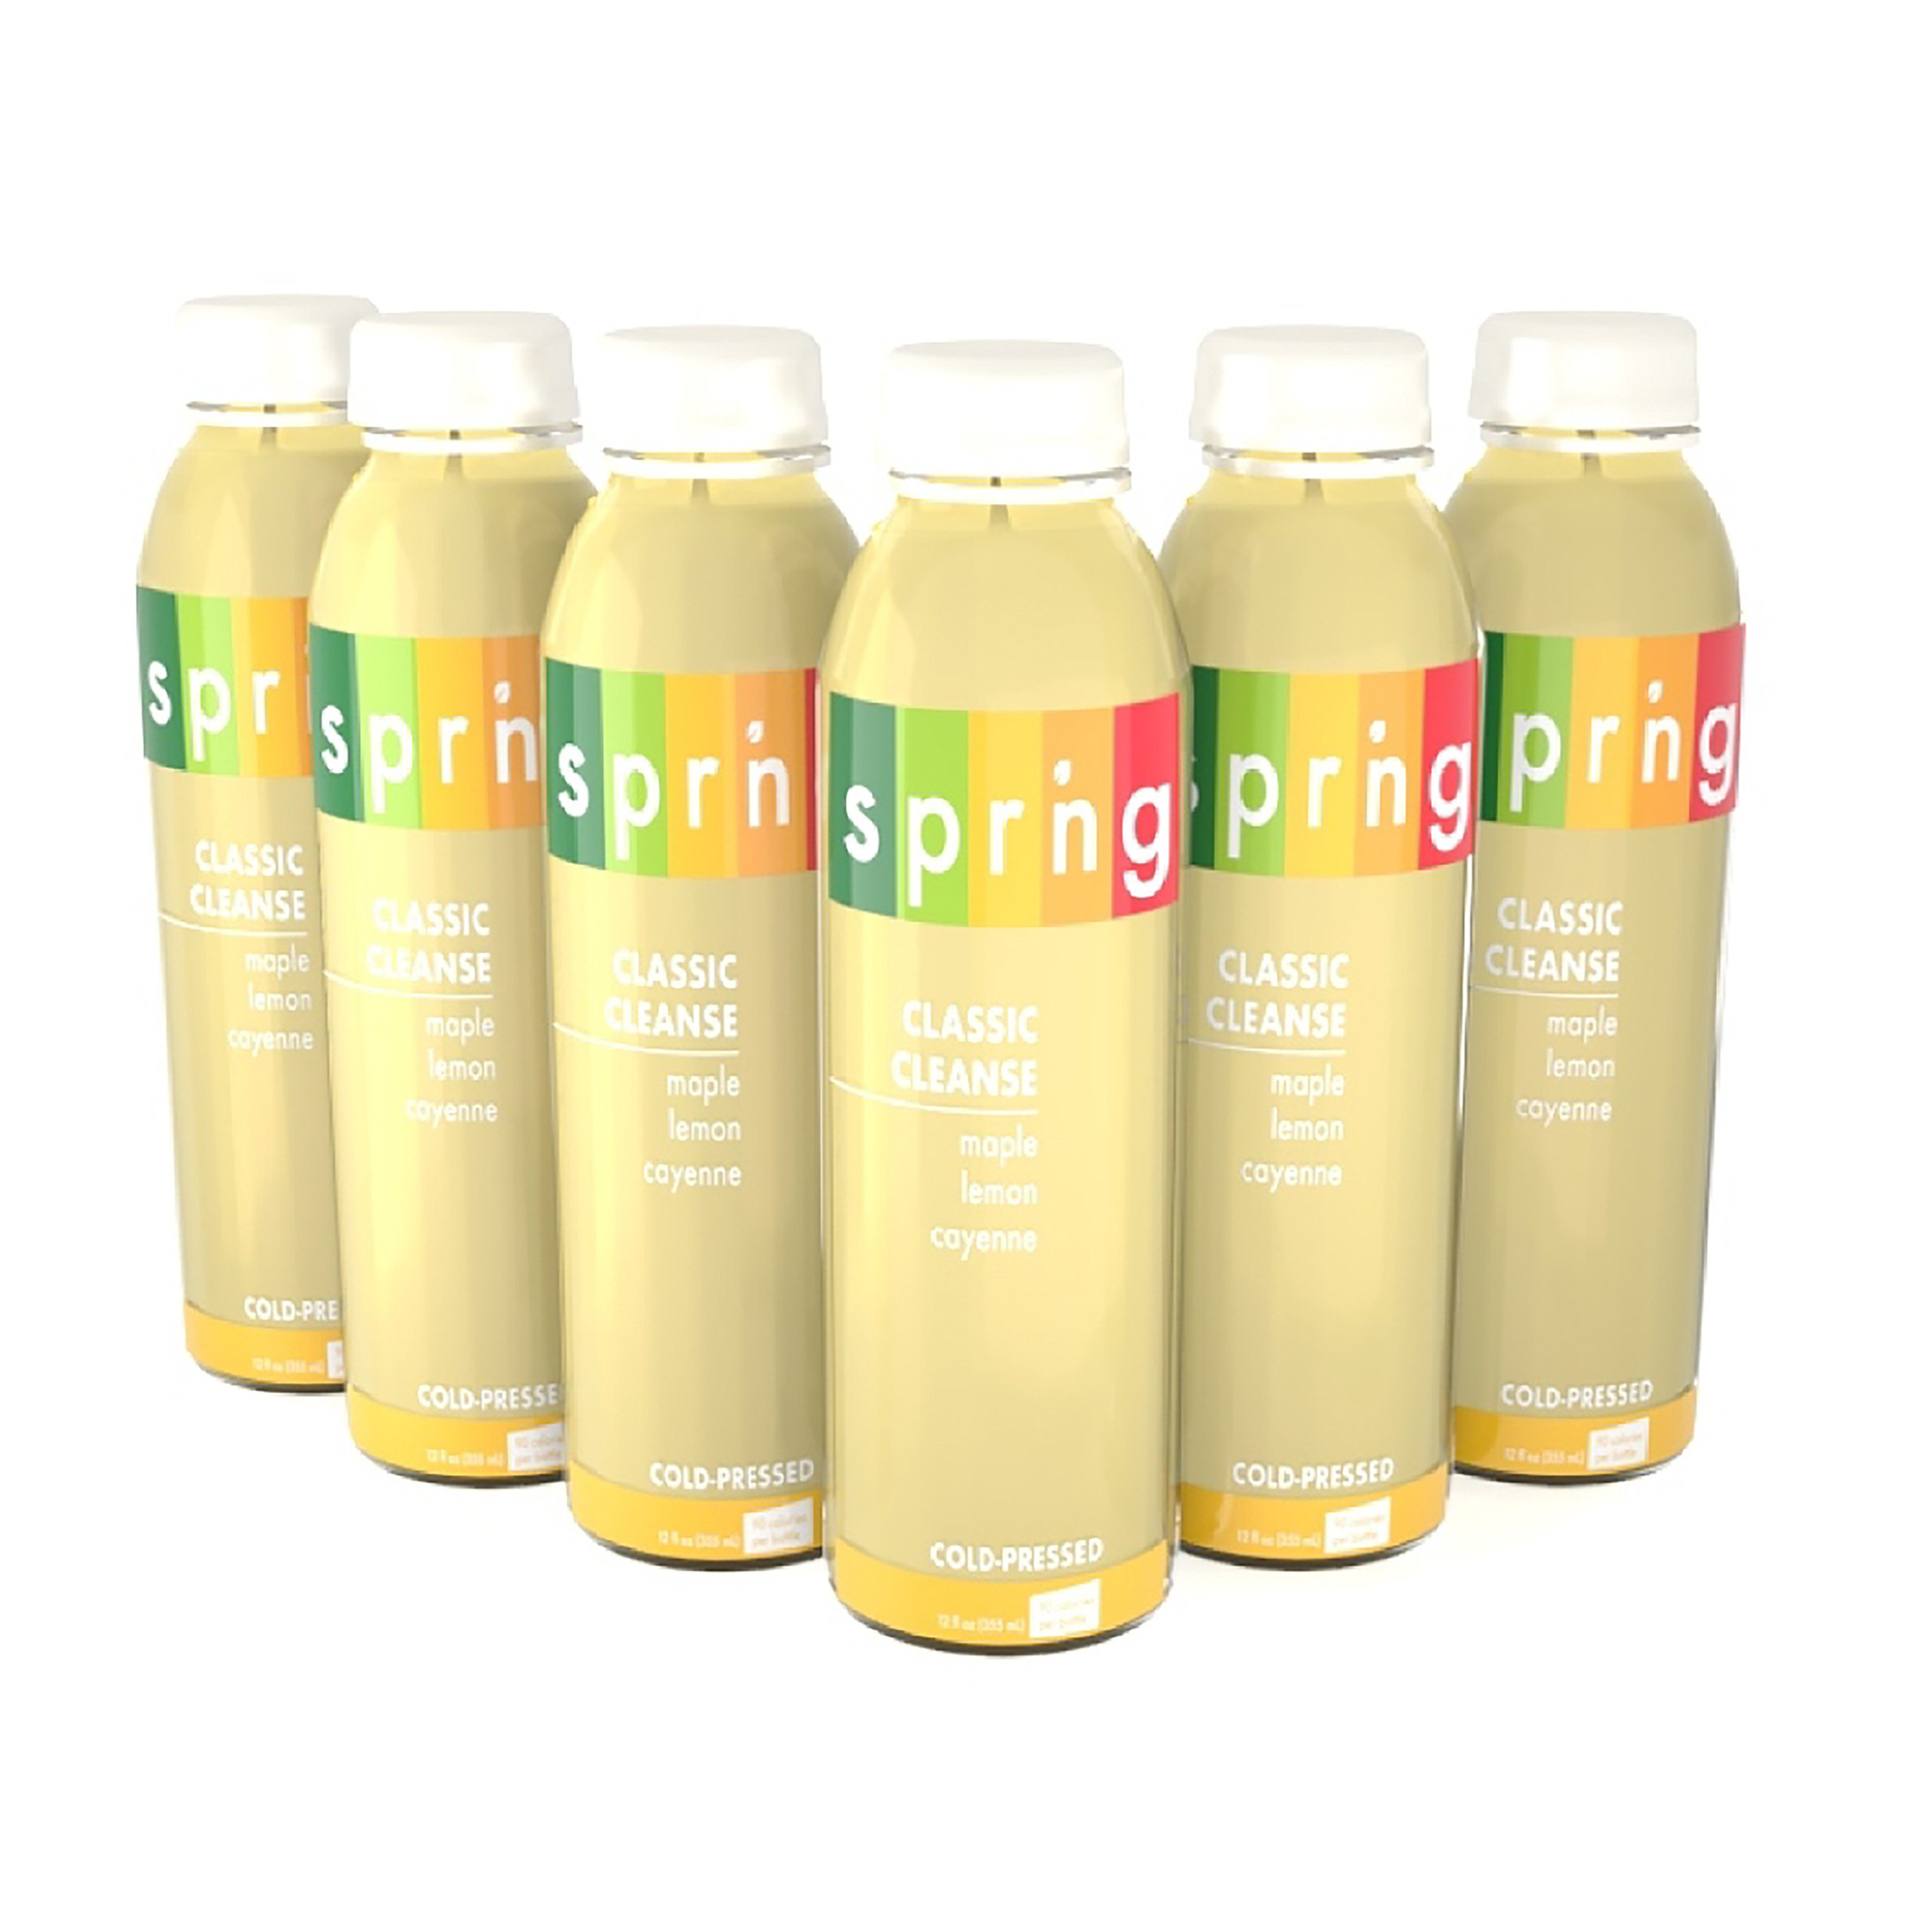 Amazon juice from the raw 3 day organic juice cleanse classic cleanse by sprng premium juices master cleanse cold pressed maple lemonade cayenne malvernweather